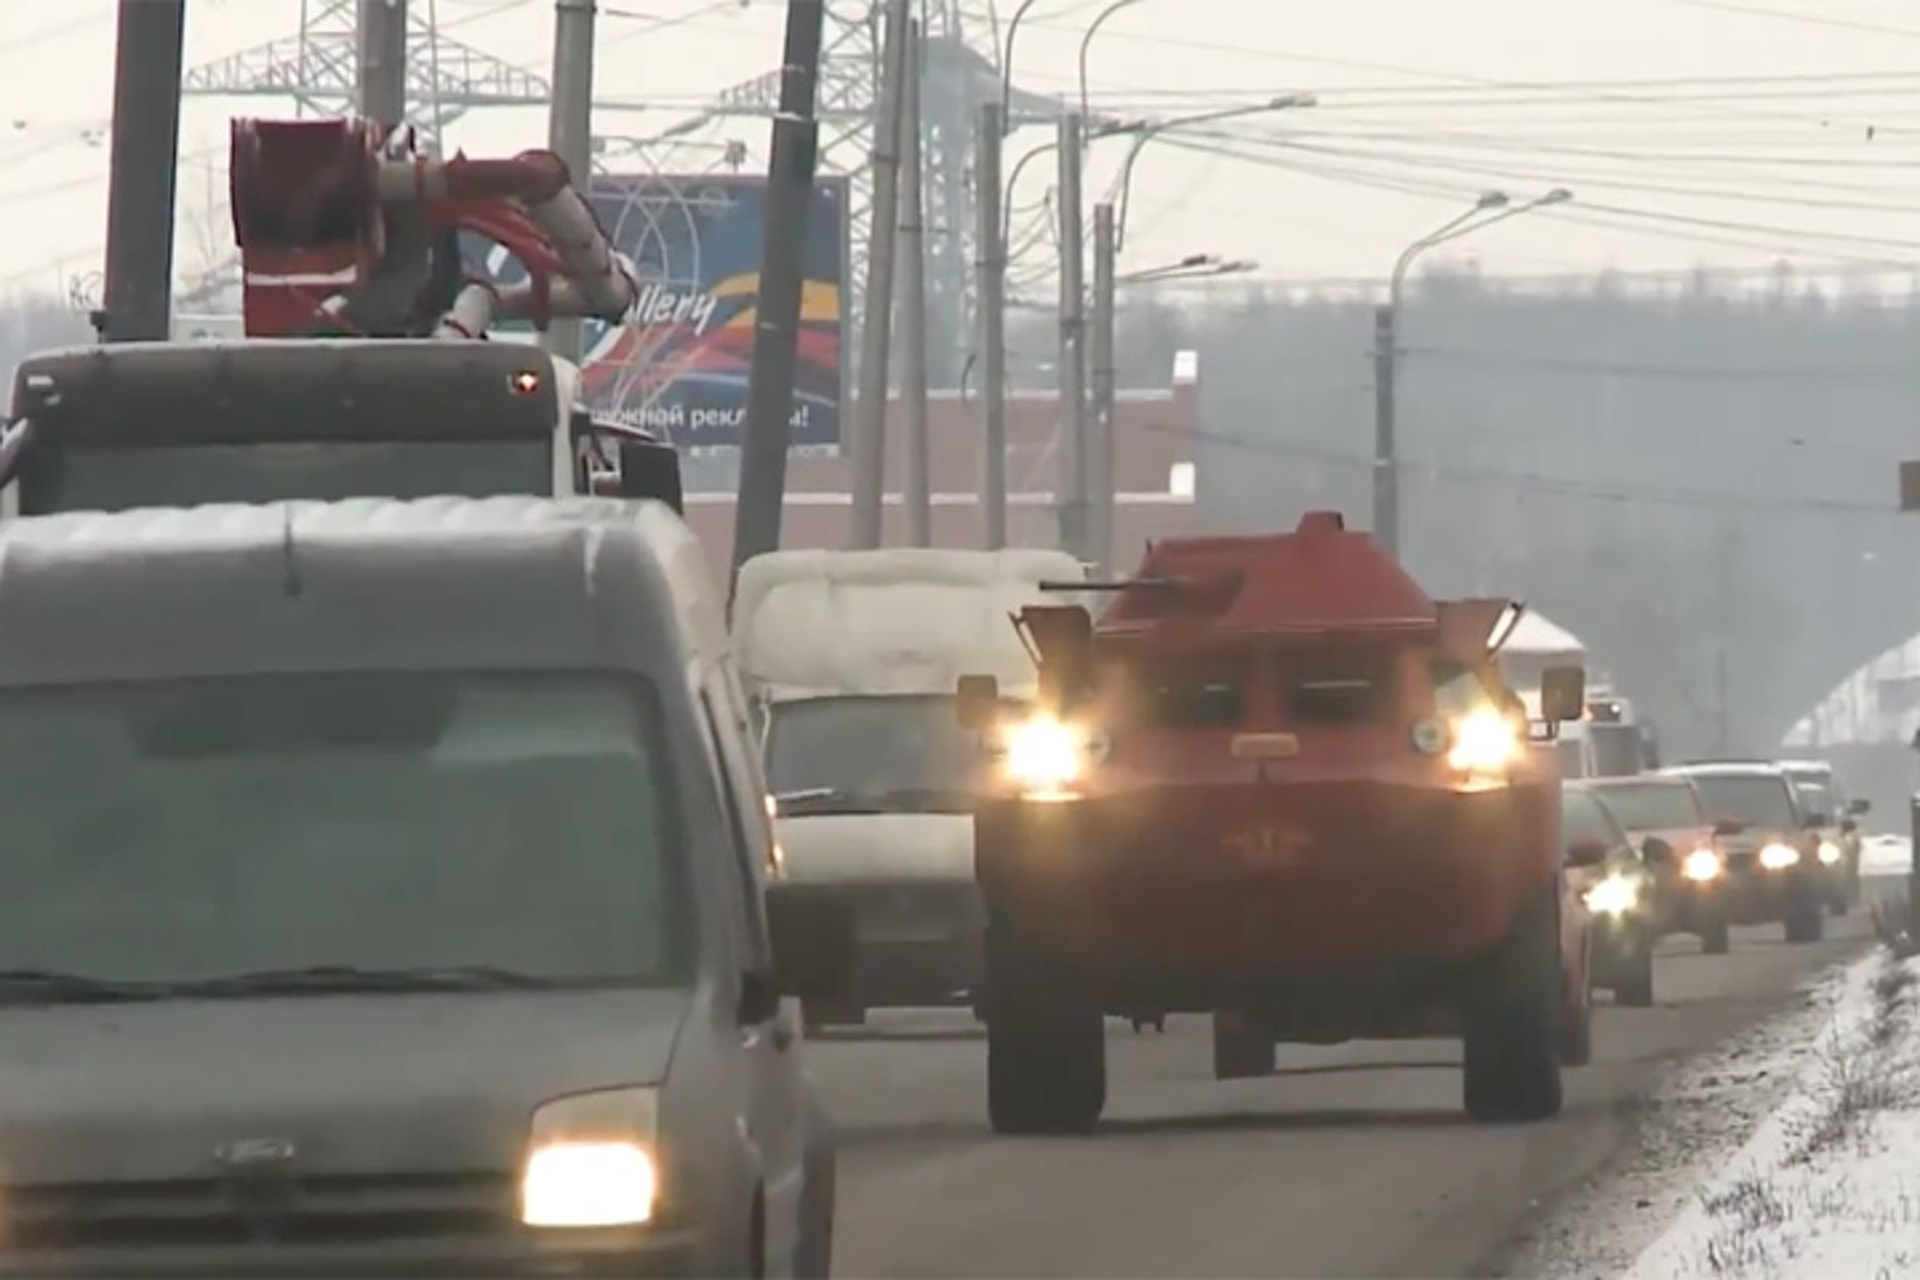 Russian Ex-Military Vehicle Now Serves as a Taxi